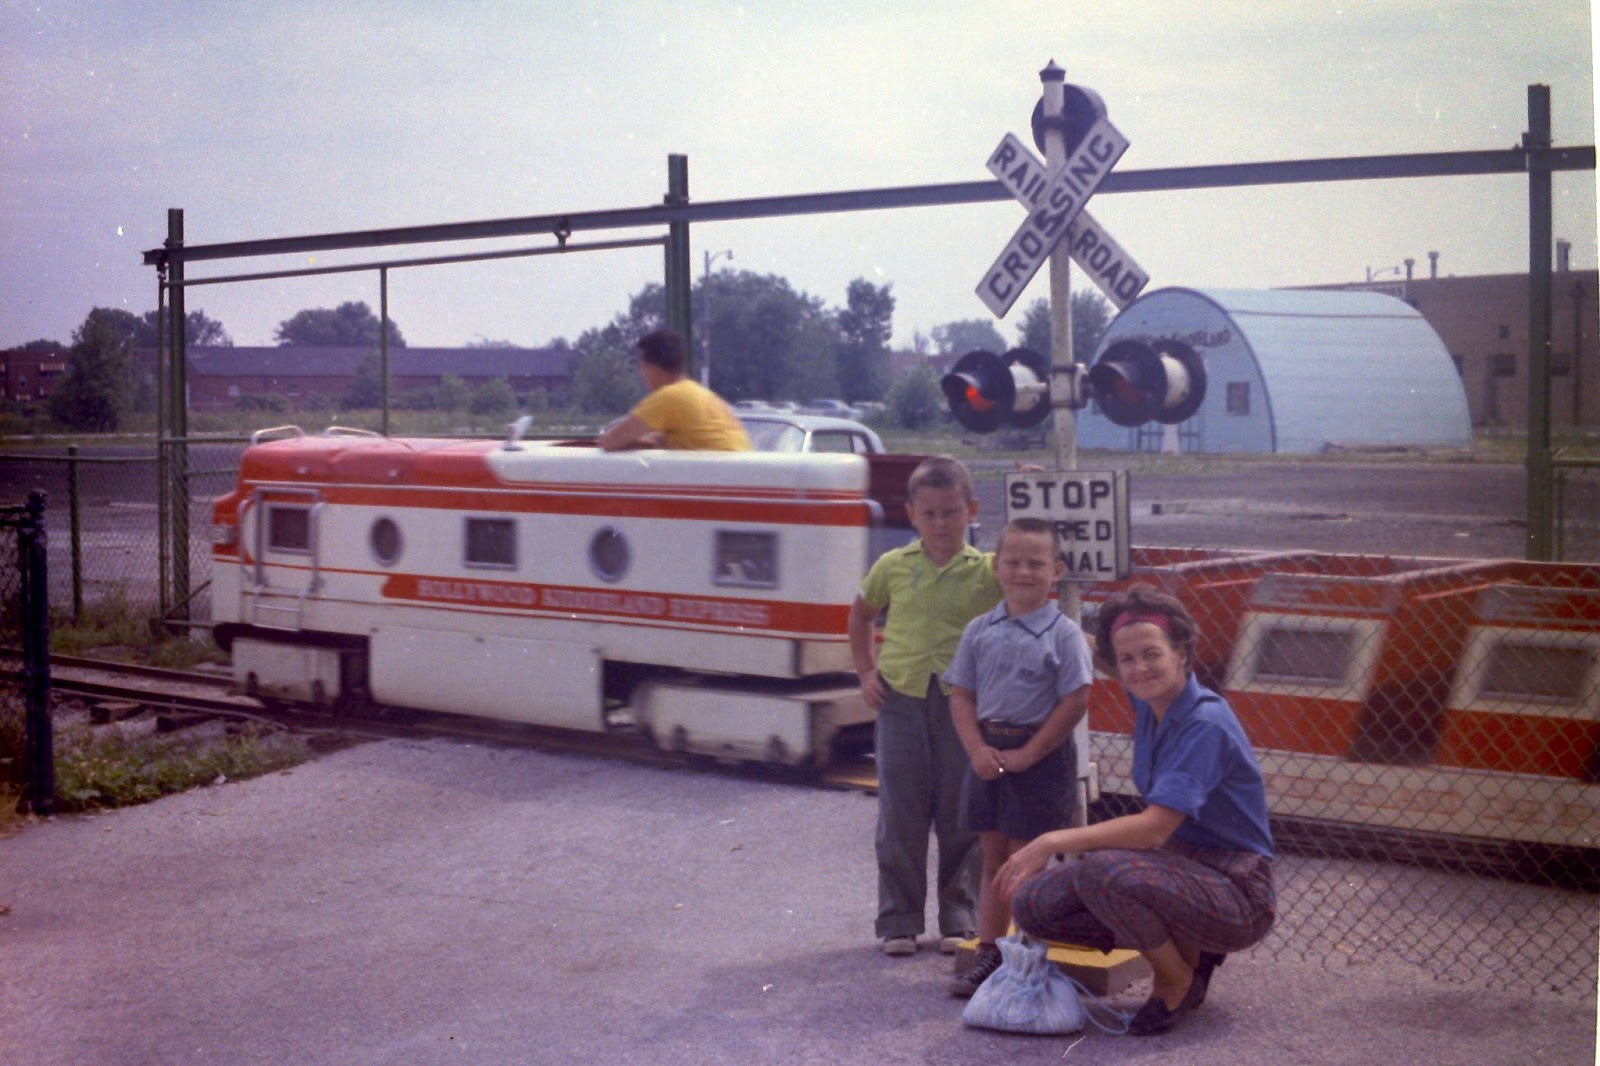 """kiddie land gym """"hollywood kiddieland"""" was an amusement park located in the area we now know as """"lincoln village,"""" which was on the southeast side of mccormick boulevard and devon avenue in chicago."""